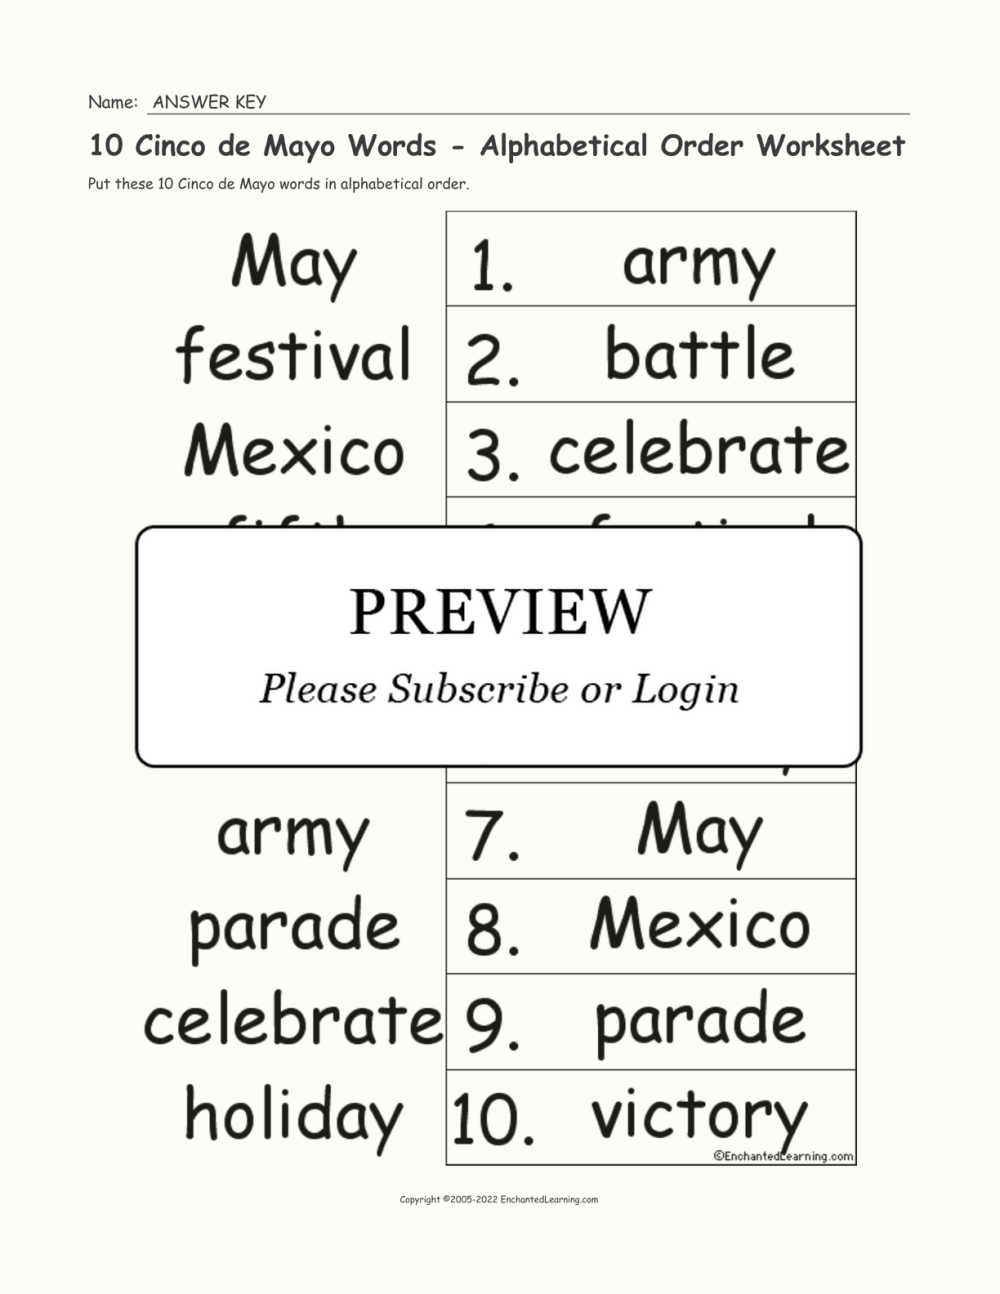 medium resolution of Free Cinco De Mayo Worksheets For 2nd Graders   Printable Worksheets and  Activities for Teachers